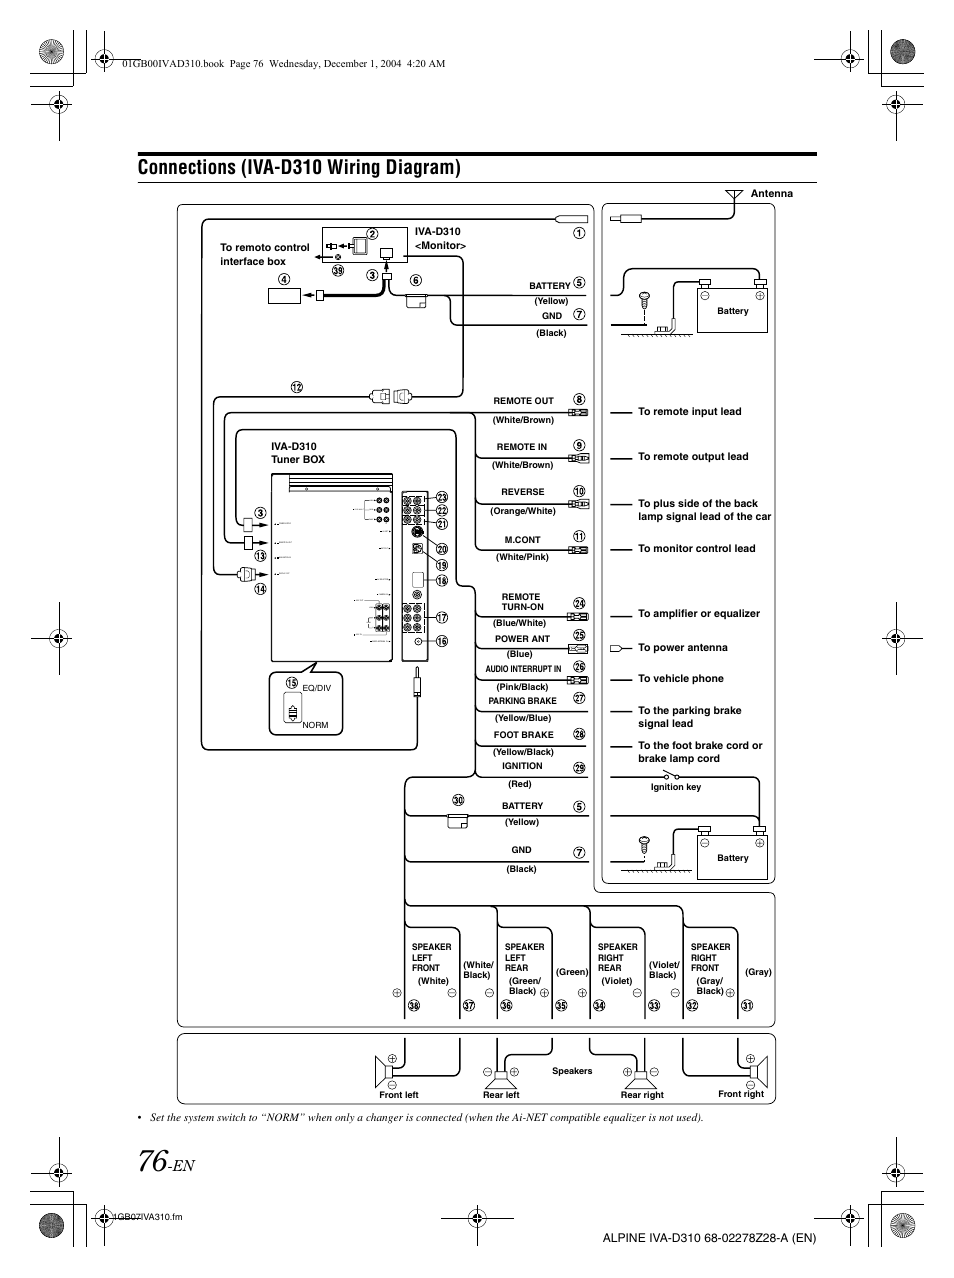 alpine iva d310 page78?resize\\\\=665%2C891 100 [ wiring diagram alpine stereo ] car stereo diagram on car alpine cda 9827 wiring diagram at gsmportal.co